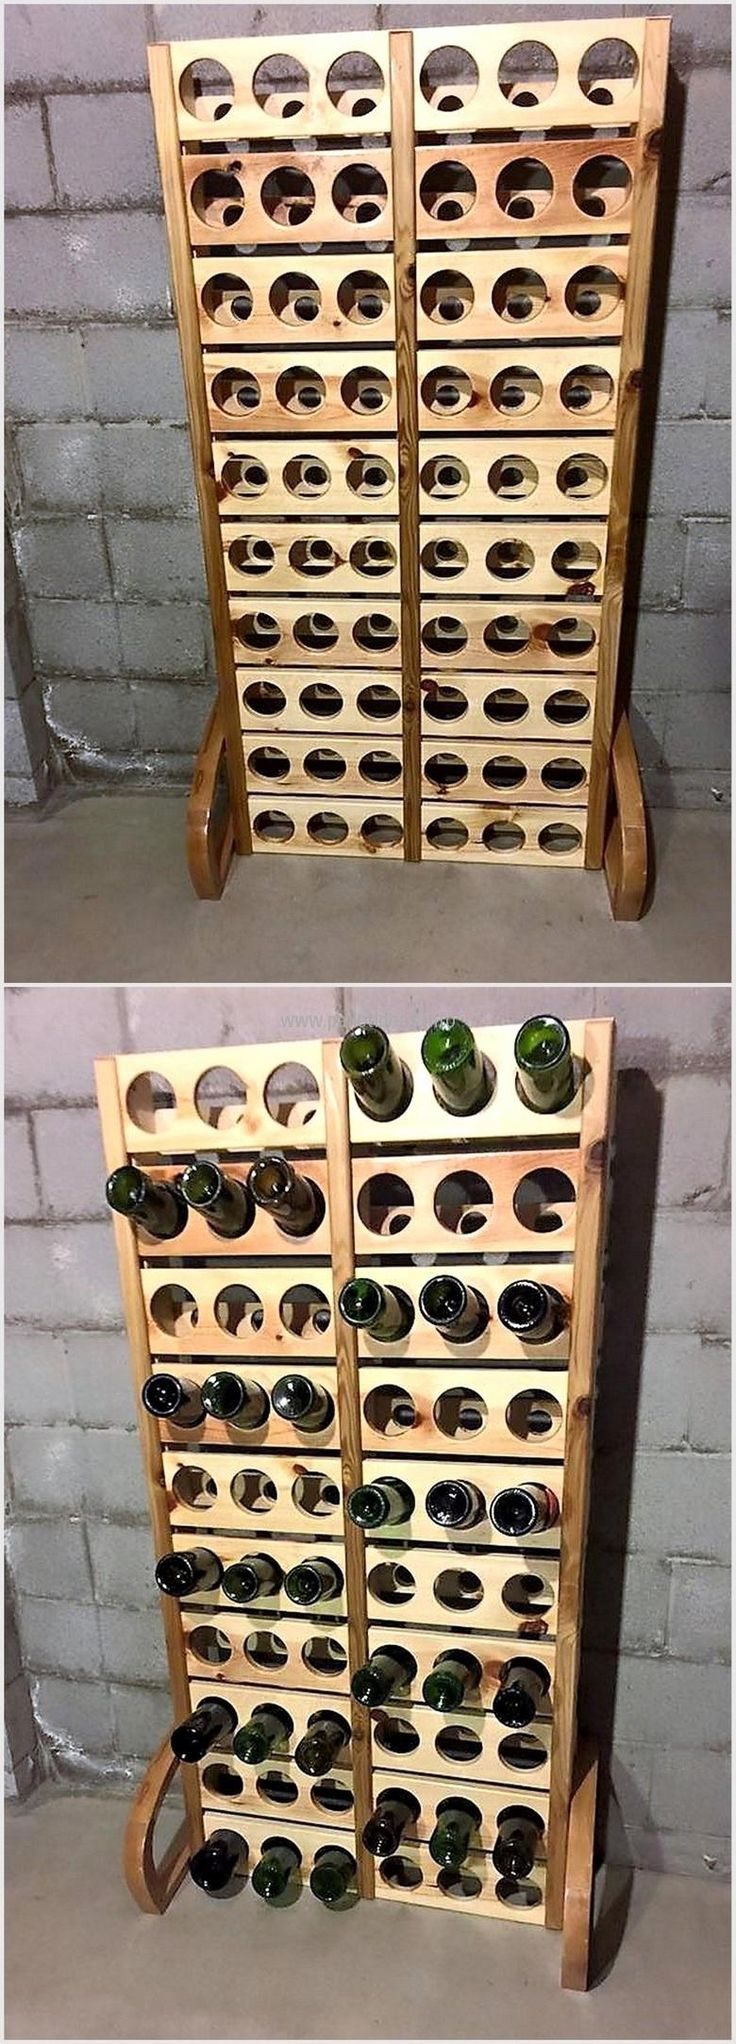 Gone are the days when people used to waste the wooden Pallets. Now a days, there are splendid ideas to utilize the pallets by recycling them in an efficient manner. These wooden pallets can serve multiple purposes for the luxury and comfort of humans. Instead of wasting your money on expensive and poorly made furniture, …